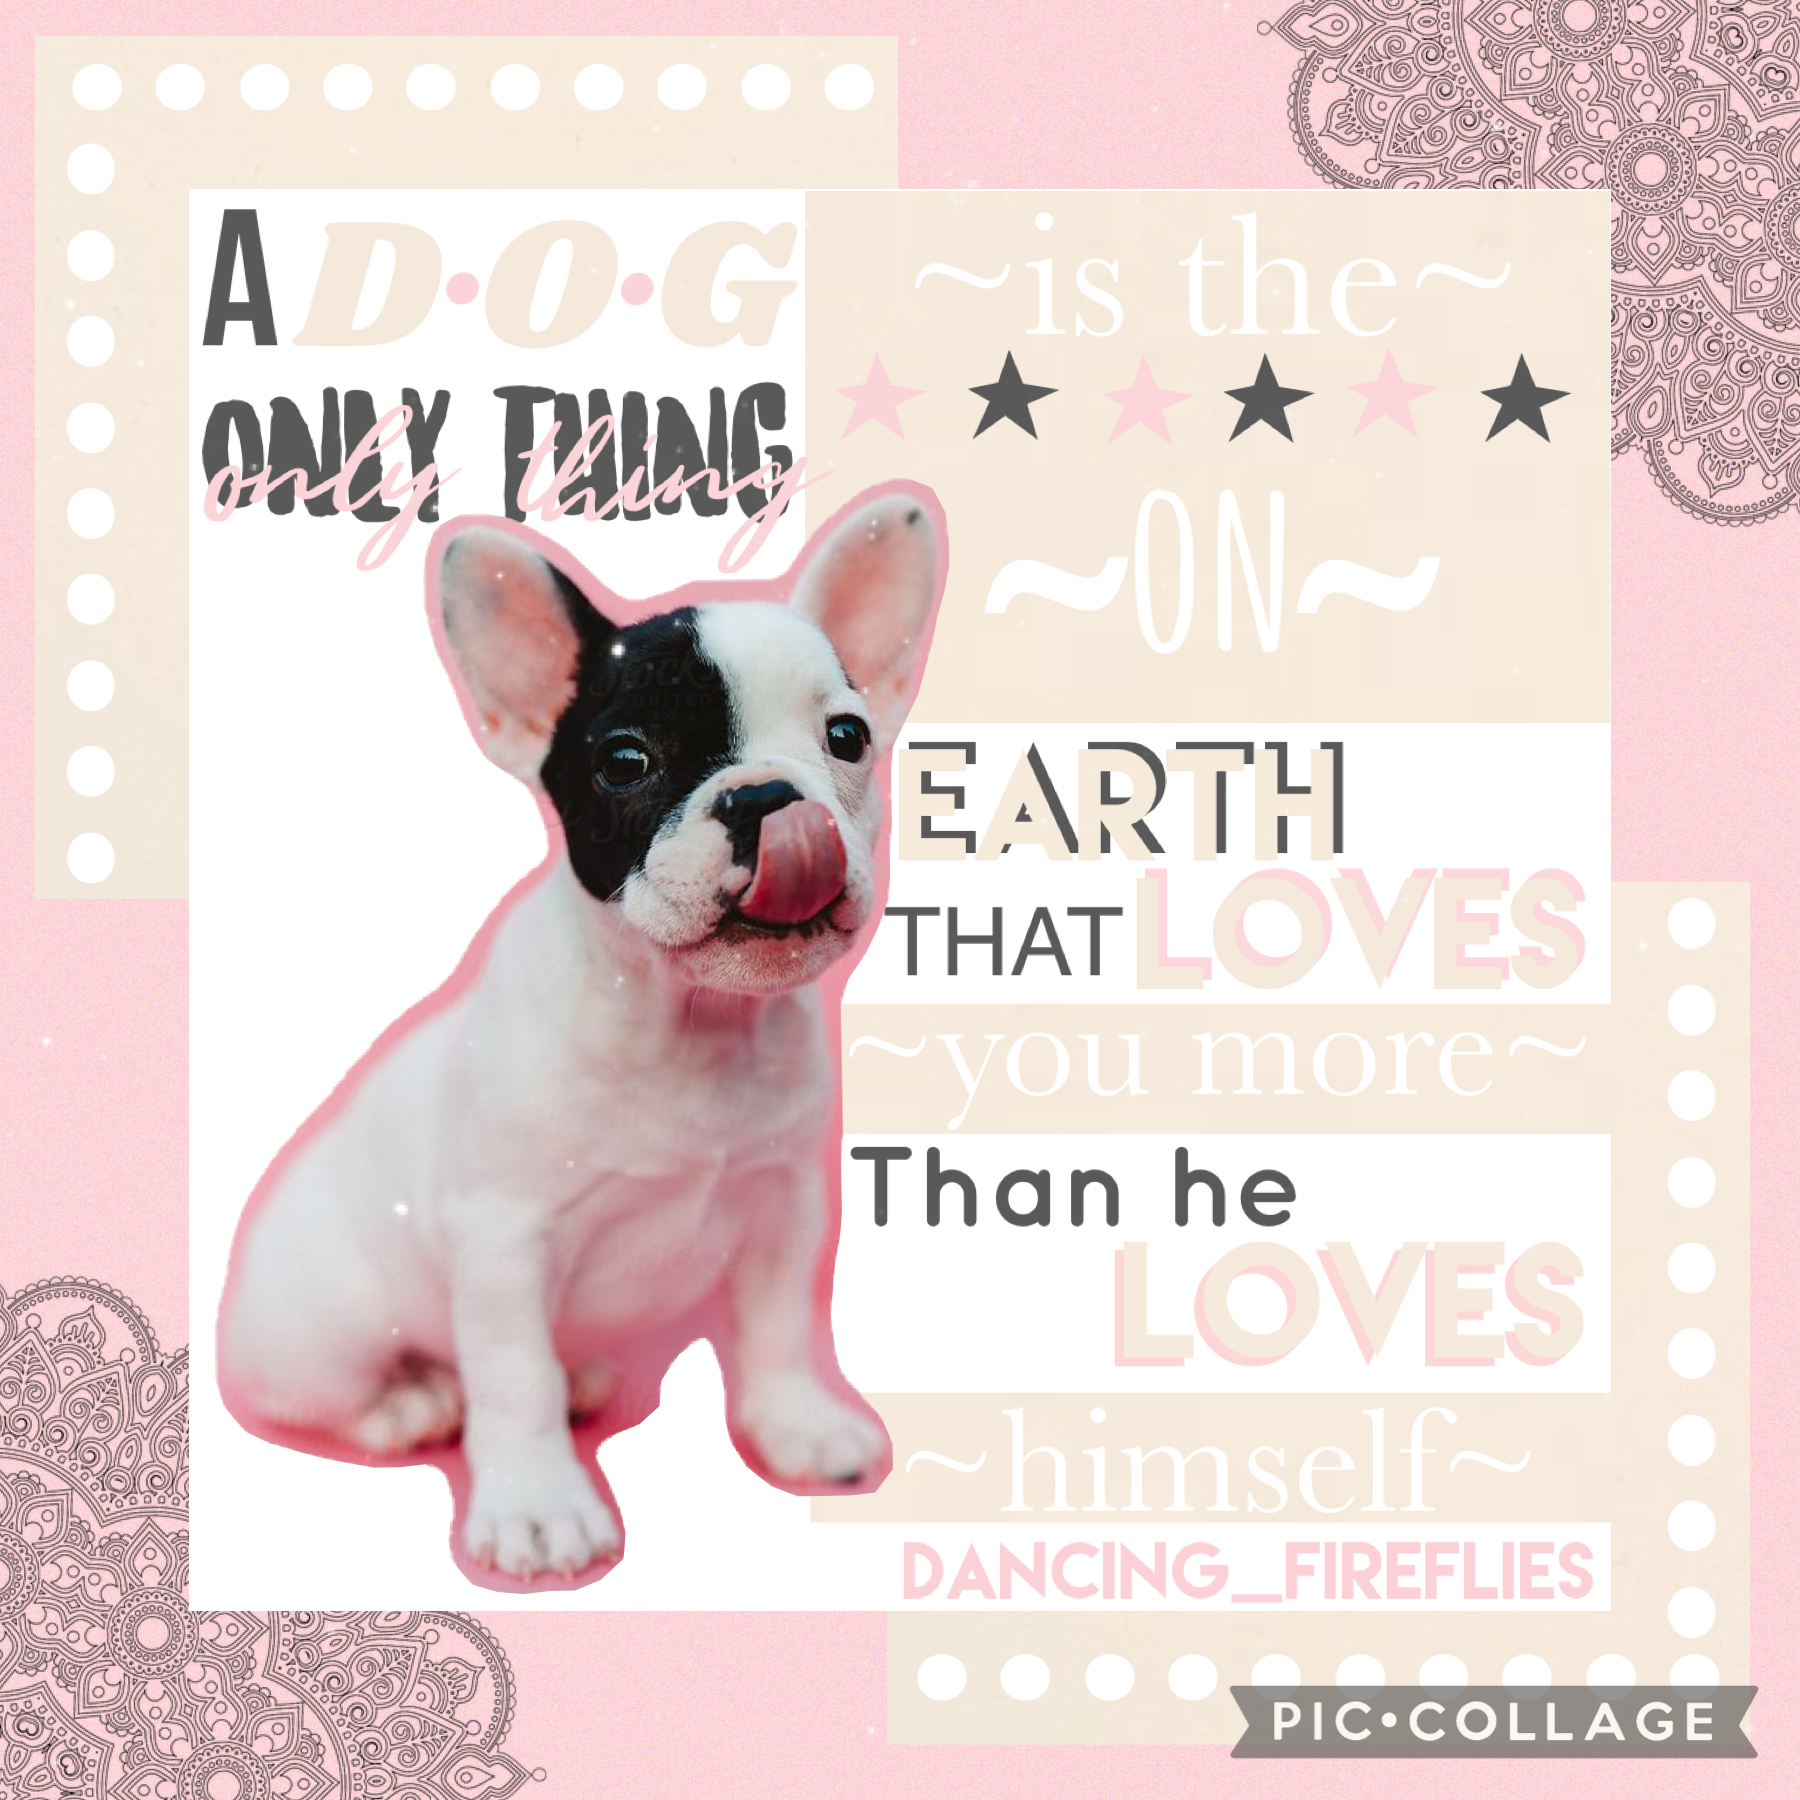 💖TAP💖 I love this quote so much and the little French is is so cute!🥰 from 1/10 how much do you rate the text? I personally don't like this style text but I want to know what you all think!💞(5/19/21)